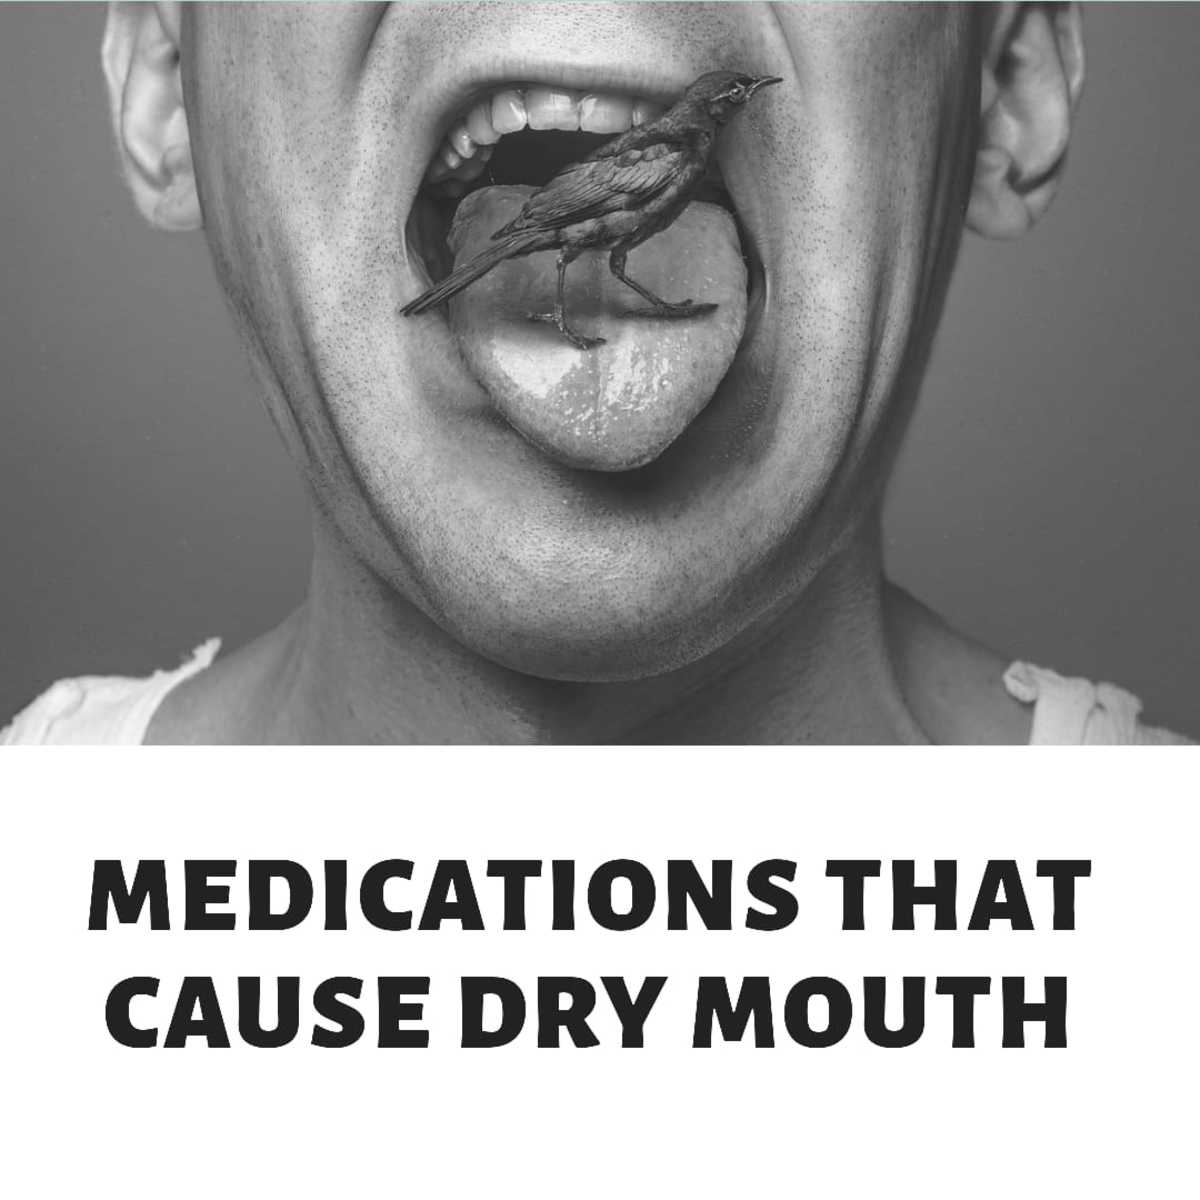 Medications That Cause Dry Mouth